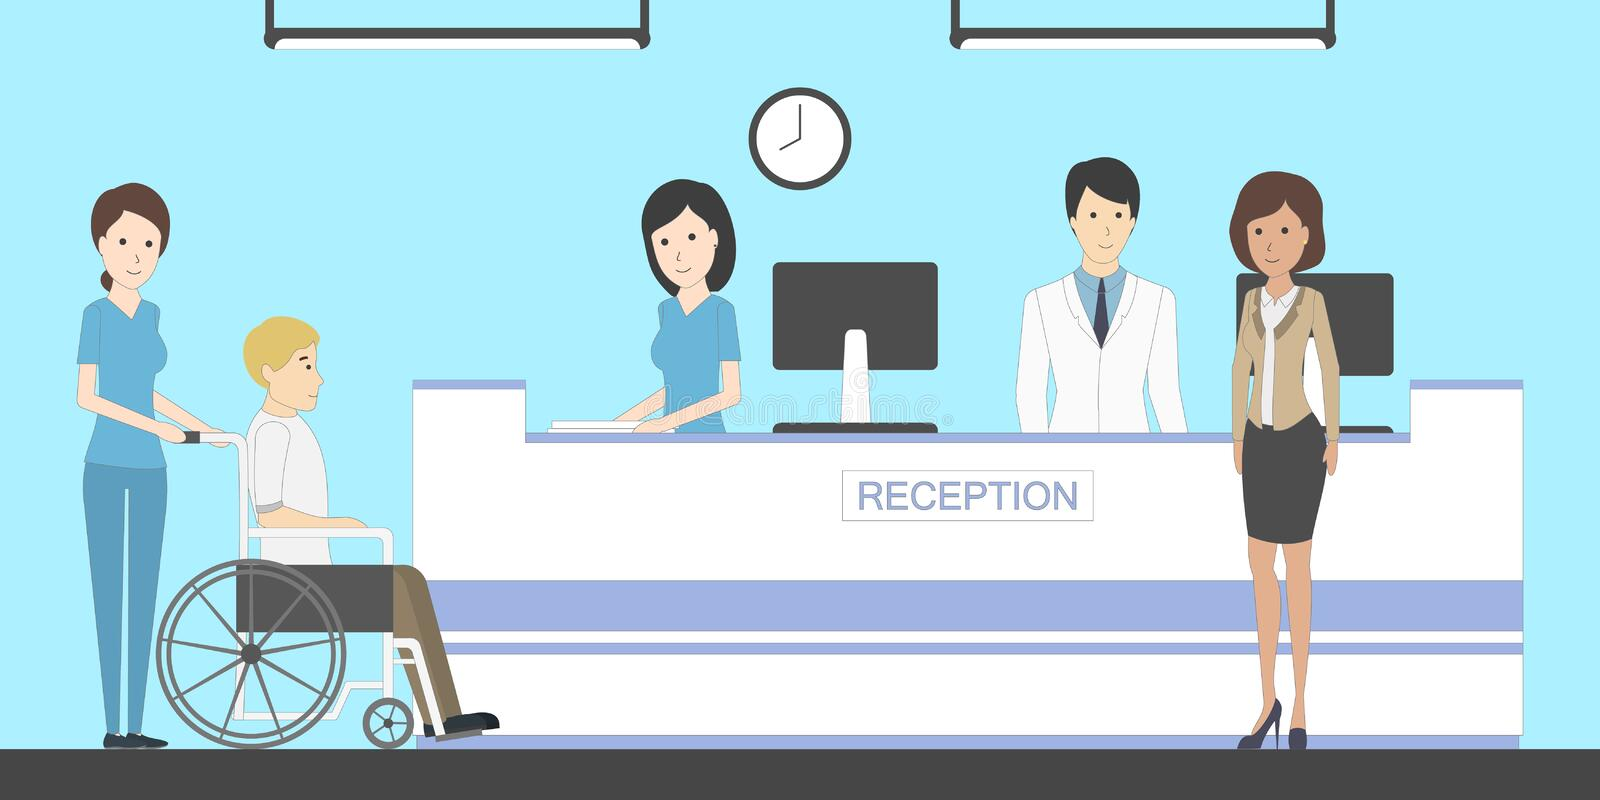 Reception in hospital. Reception in hospital with patients. Waiting room with disabled man. Healthcare royalty free illustration